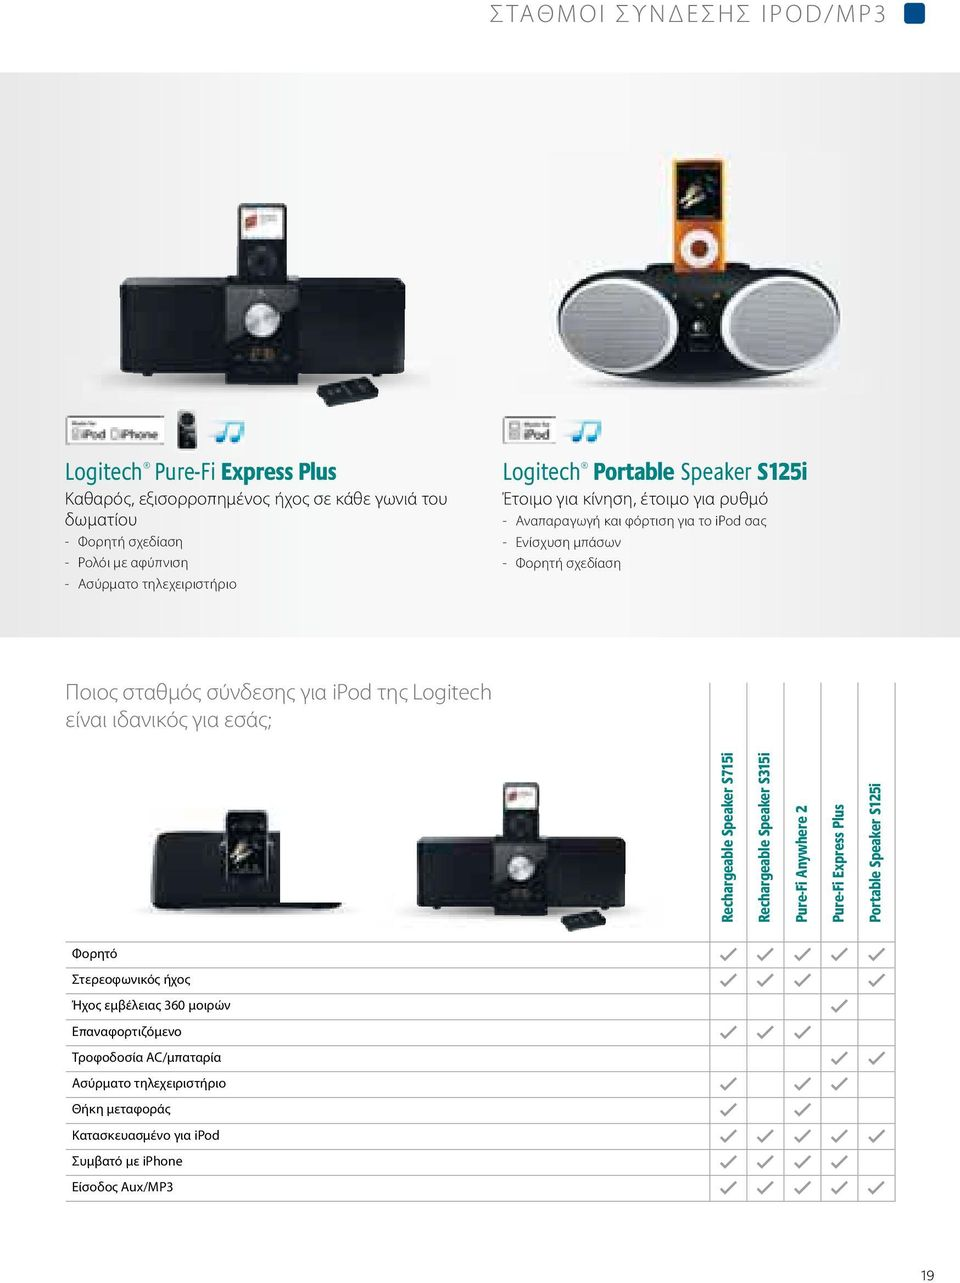 σύνδεσης για ipod της Logitech είναι ιδανικός για εσάς; Rechargeable Speaker S715i Rechargeable Speaker S315i Pure-Fi Anywhere 2 Pure-Fi Express Plus Portable Speaker S125i